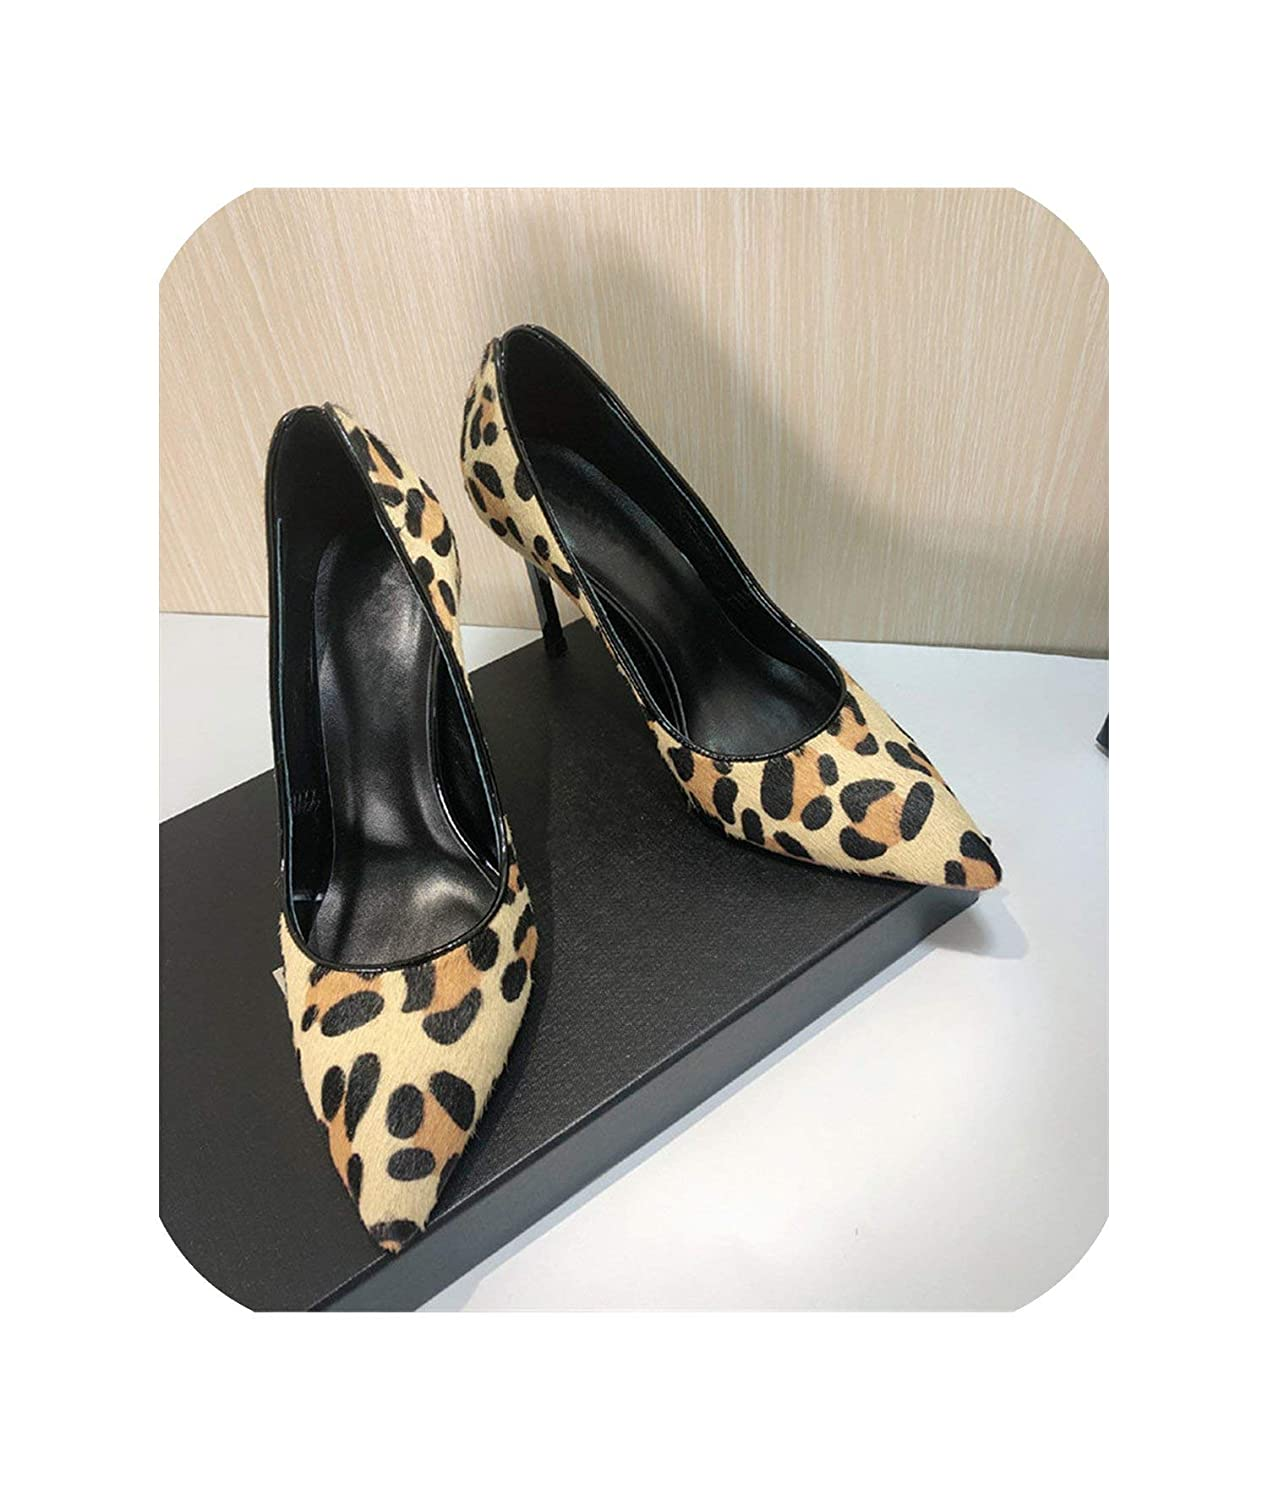 Leopard 8.5cm The Hot Rock-sandals Sexy Leopard High Heel Pumps Women New Spring 10cm Metal Stiletto Heel Pointed Toe Horsehair OL Working shoes Woman